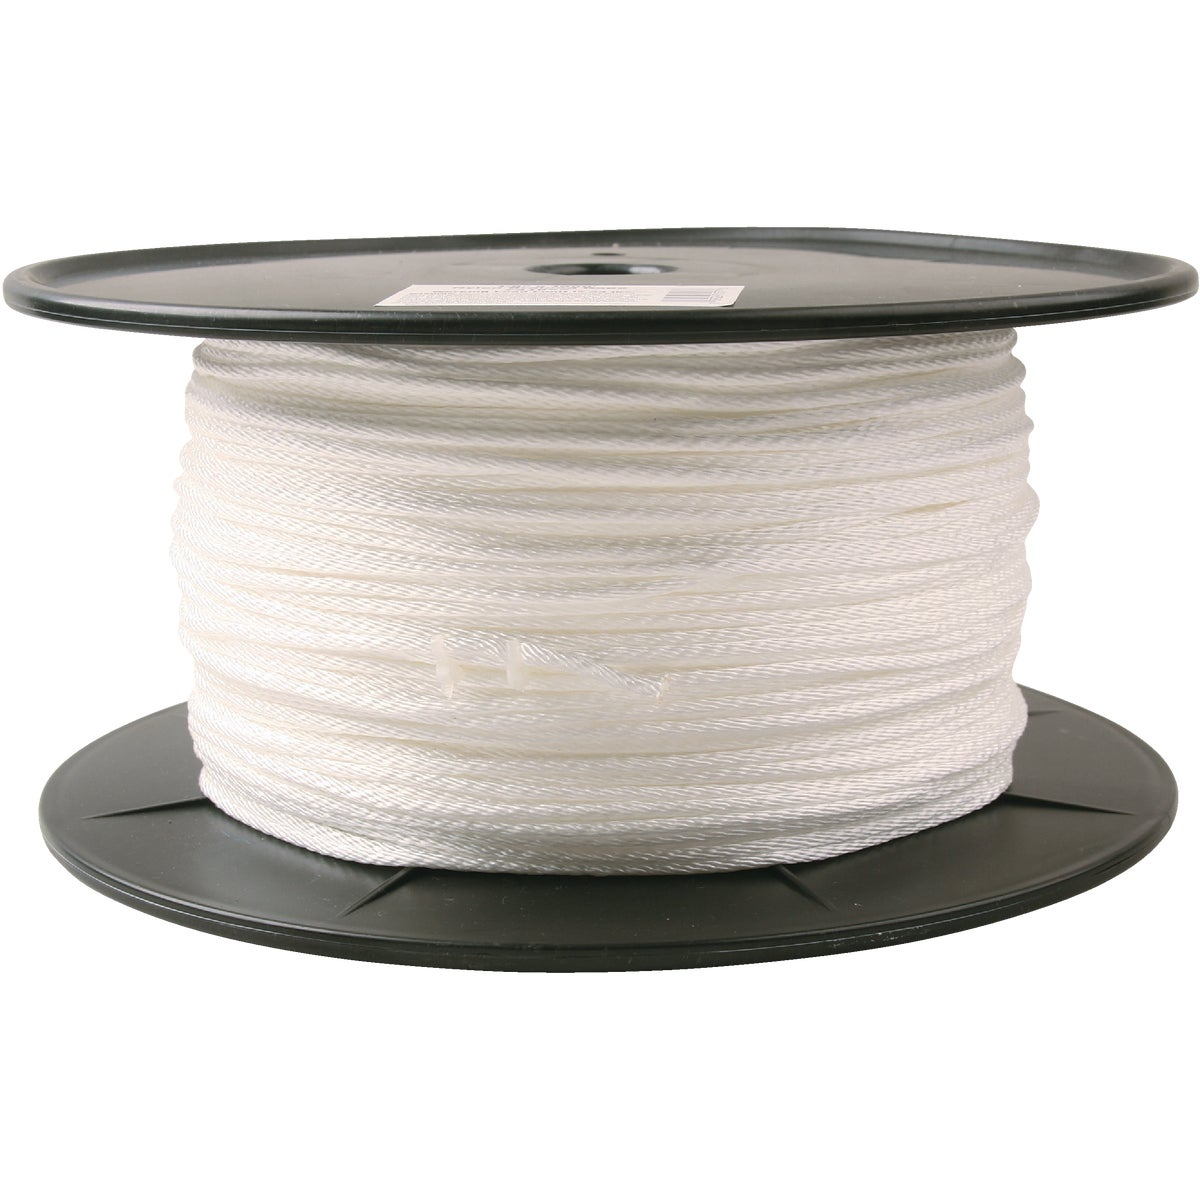 1/8X1000' NYL BRAID ROPE - 741059 by Do it Best